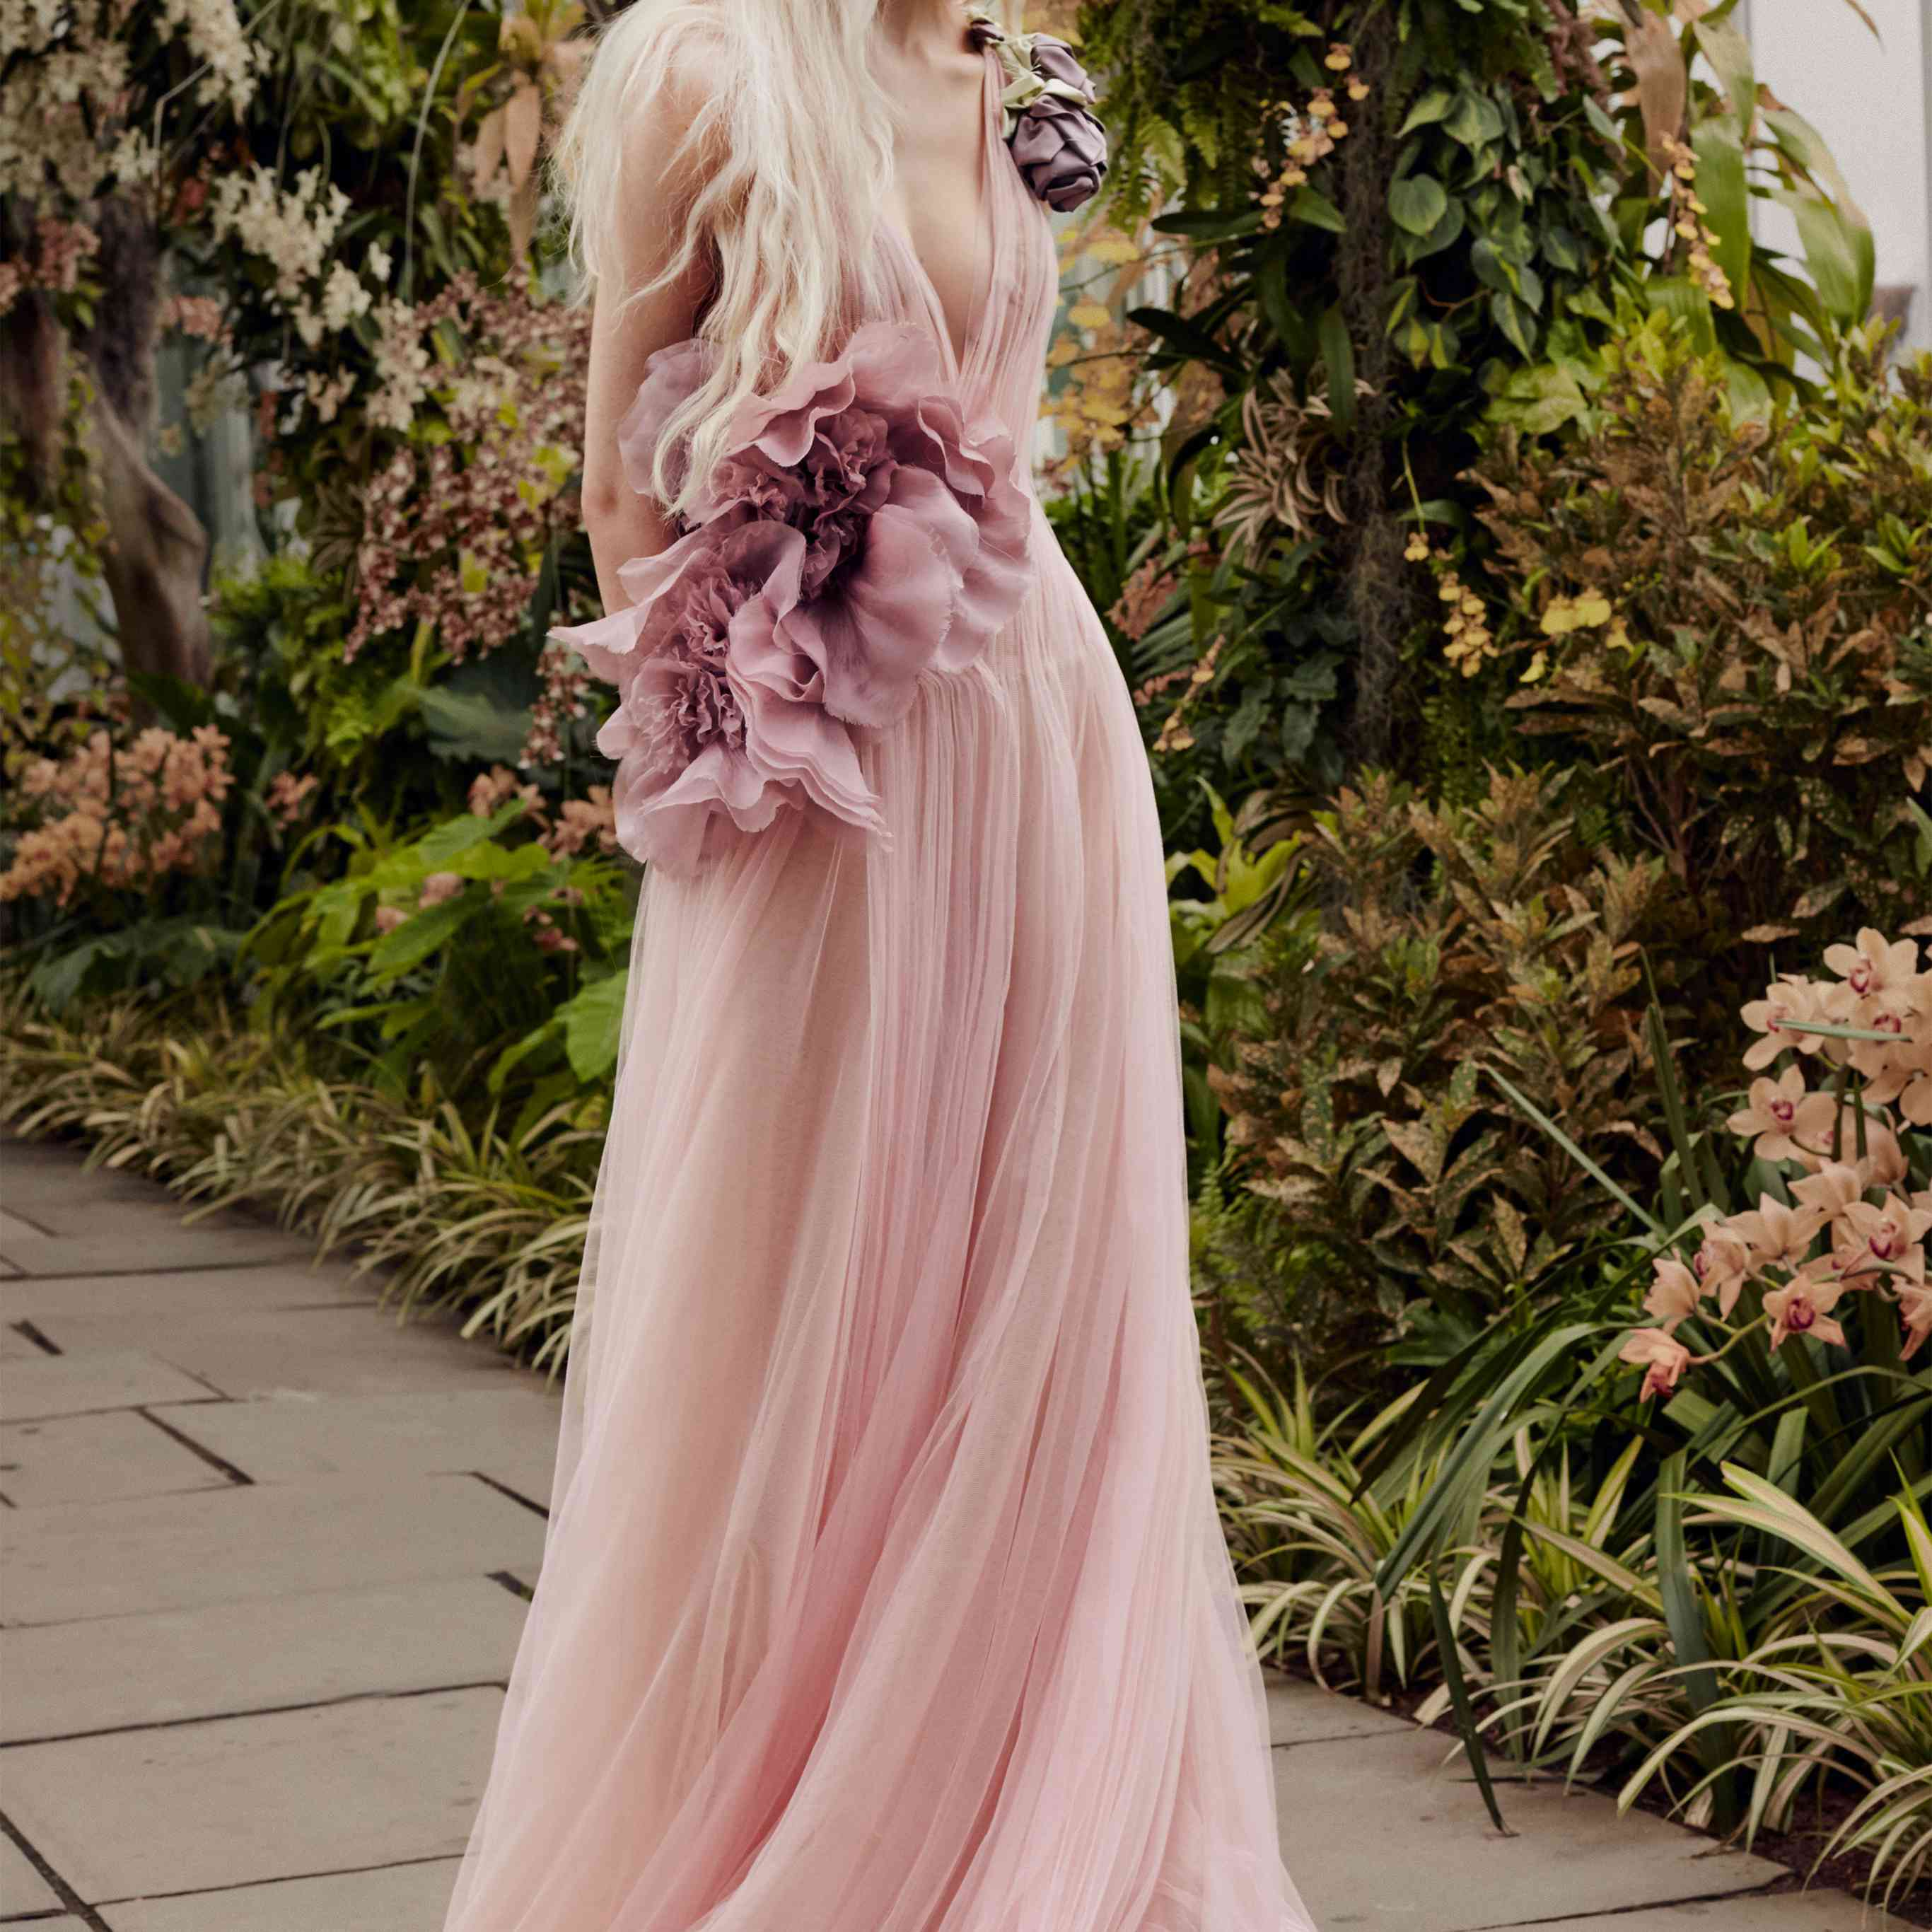 Model in pink V-neck tulle gown with pink flower accents at the waist and a lavender floral accent at the shoulder